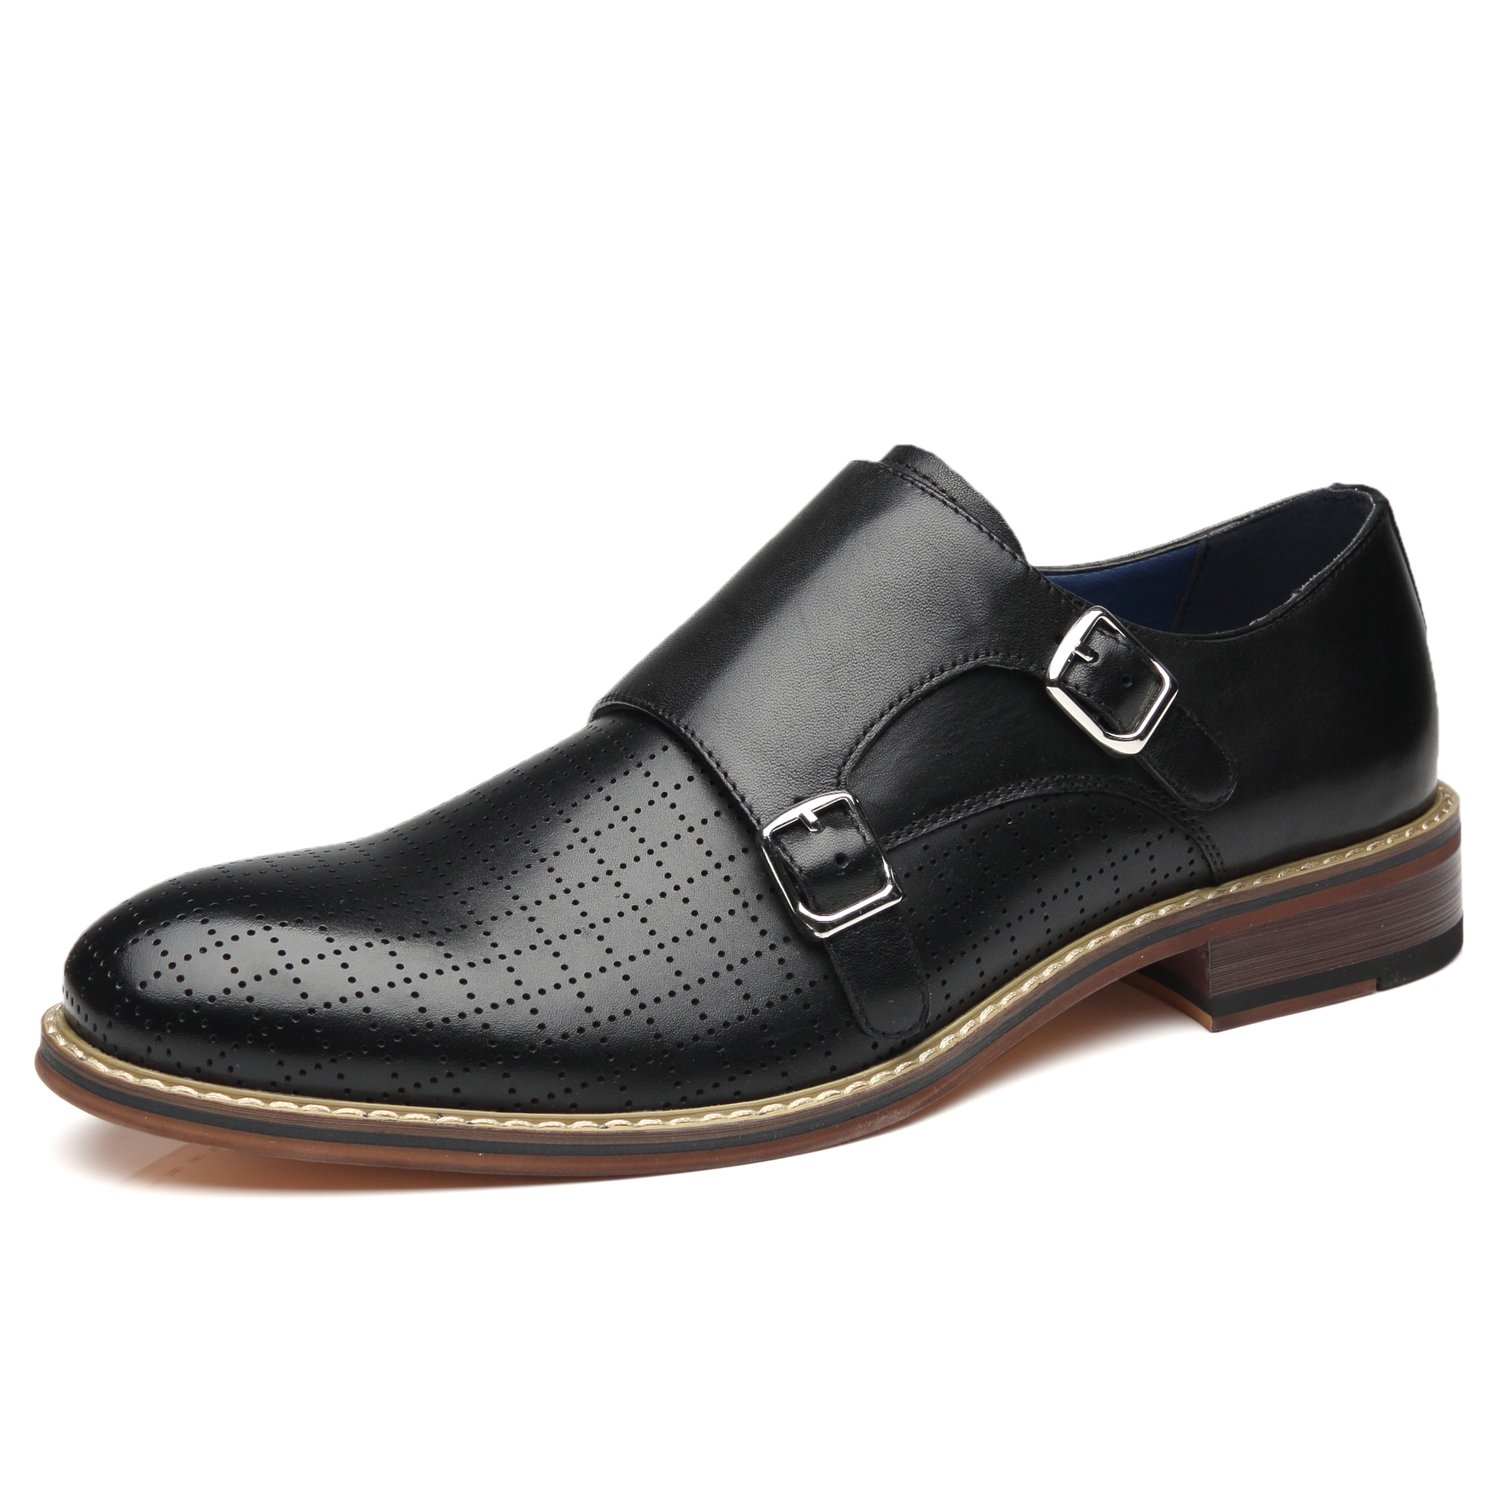 La Milano Men's Double Monk Strap Slip On Loafer Leather Oxford Plain Toe Classic Casual Comfortable Dress Shoes For Men by La Milano